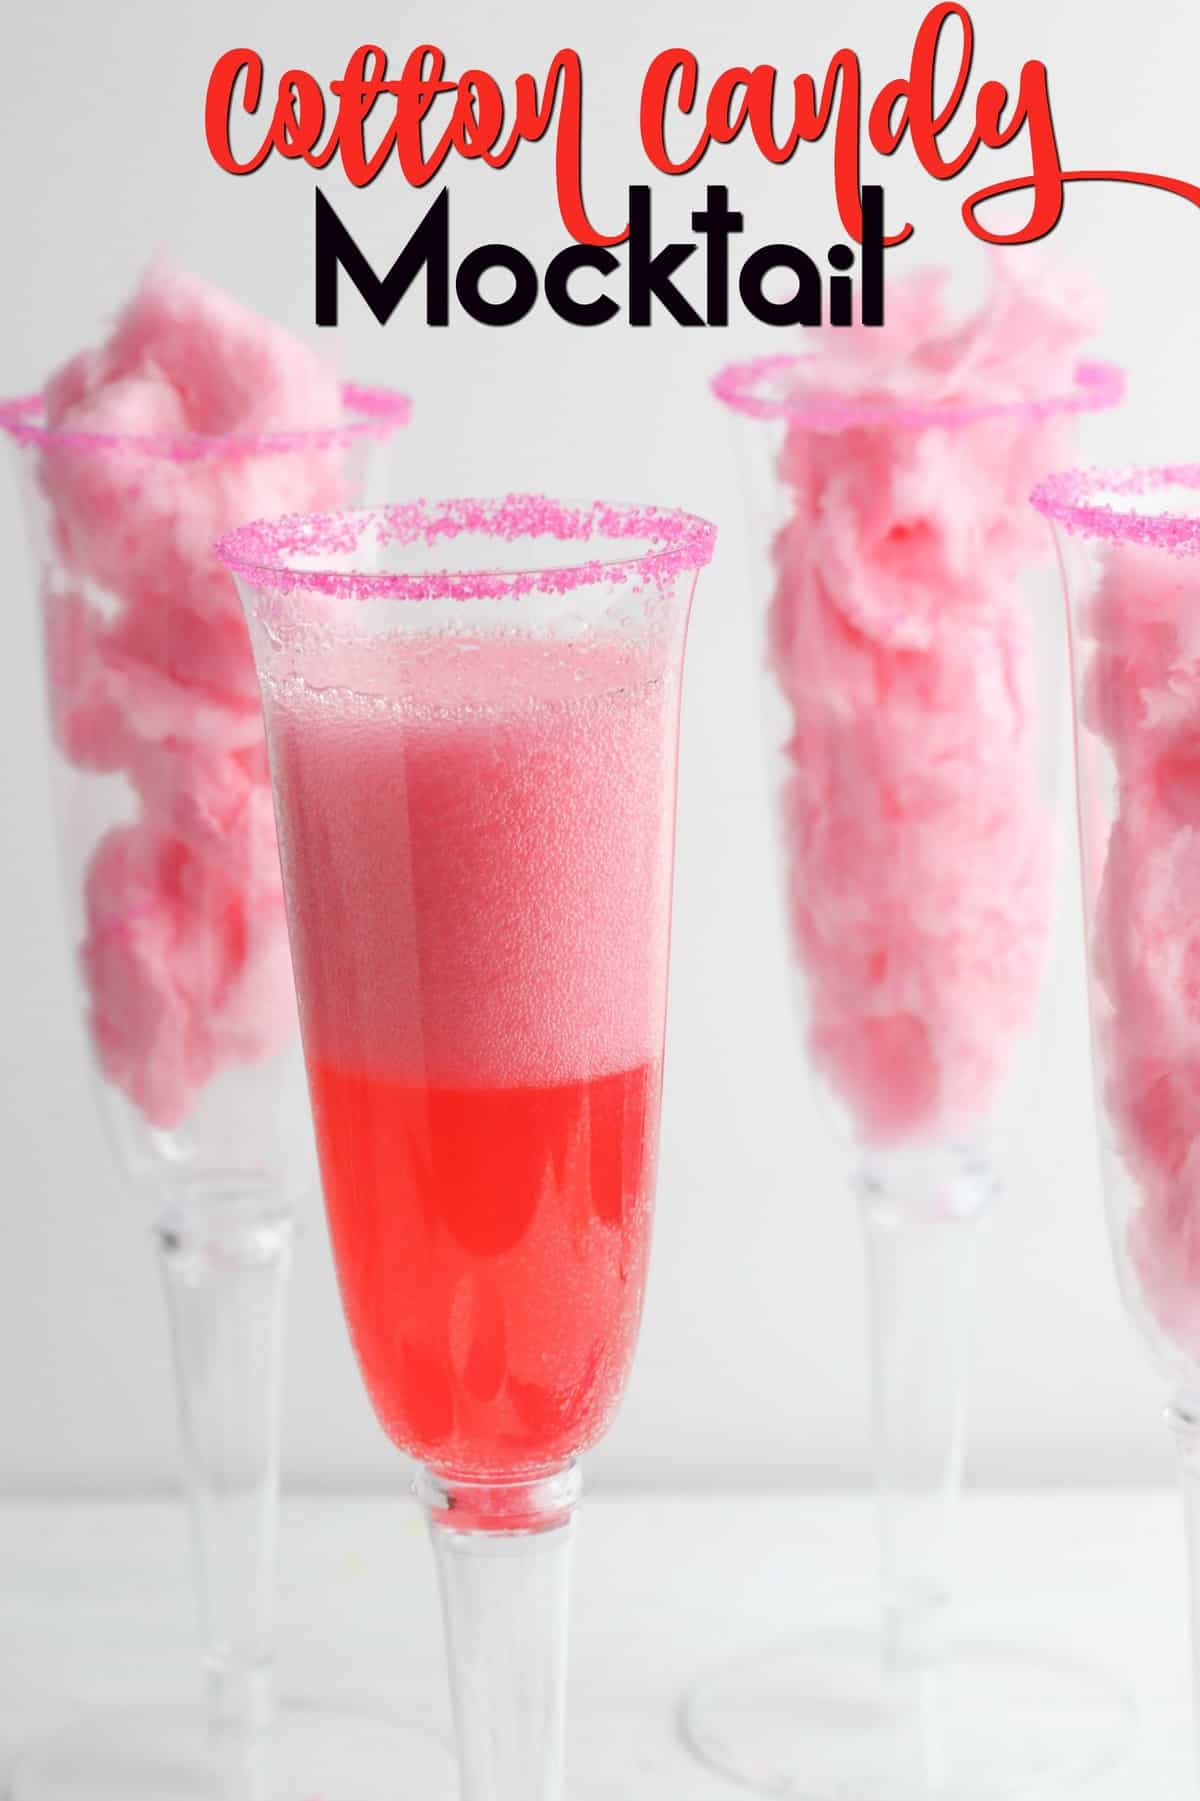 Cotton Candy Mocktail